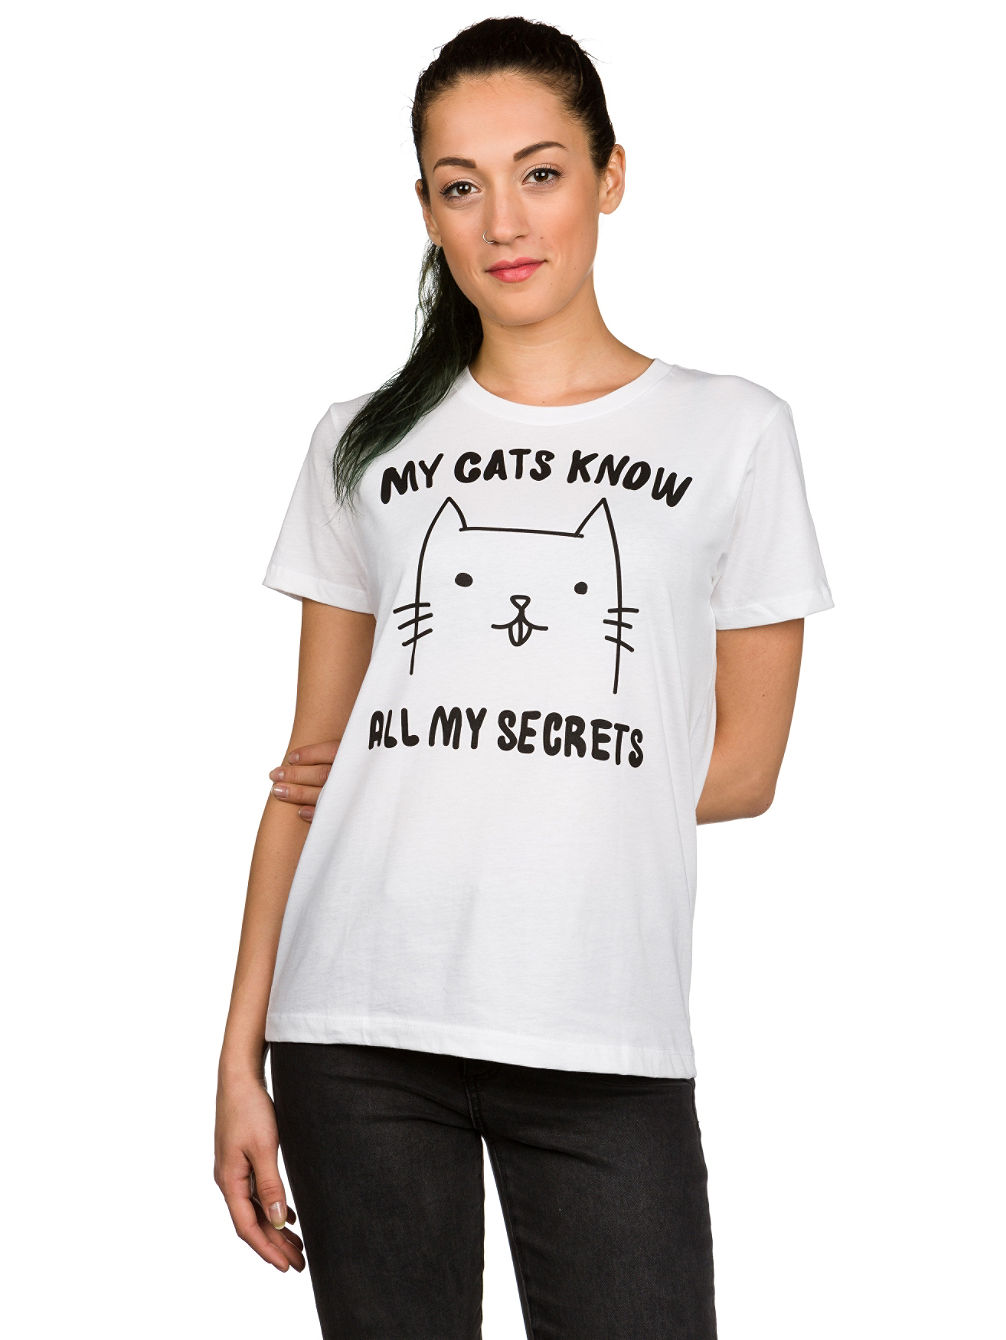 My Cats Know T-Shirt